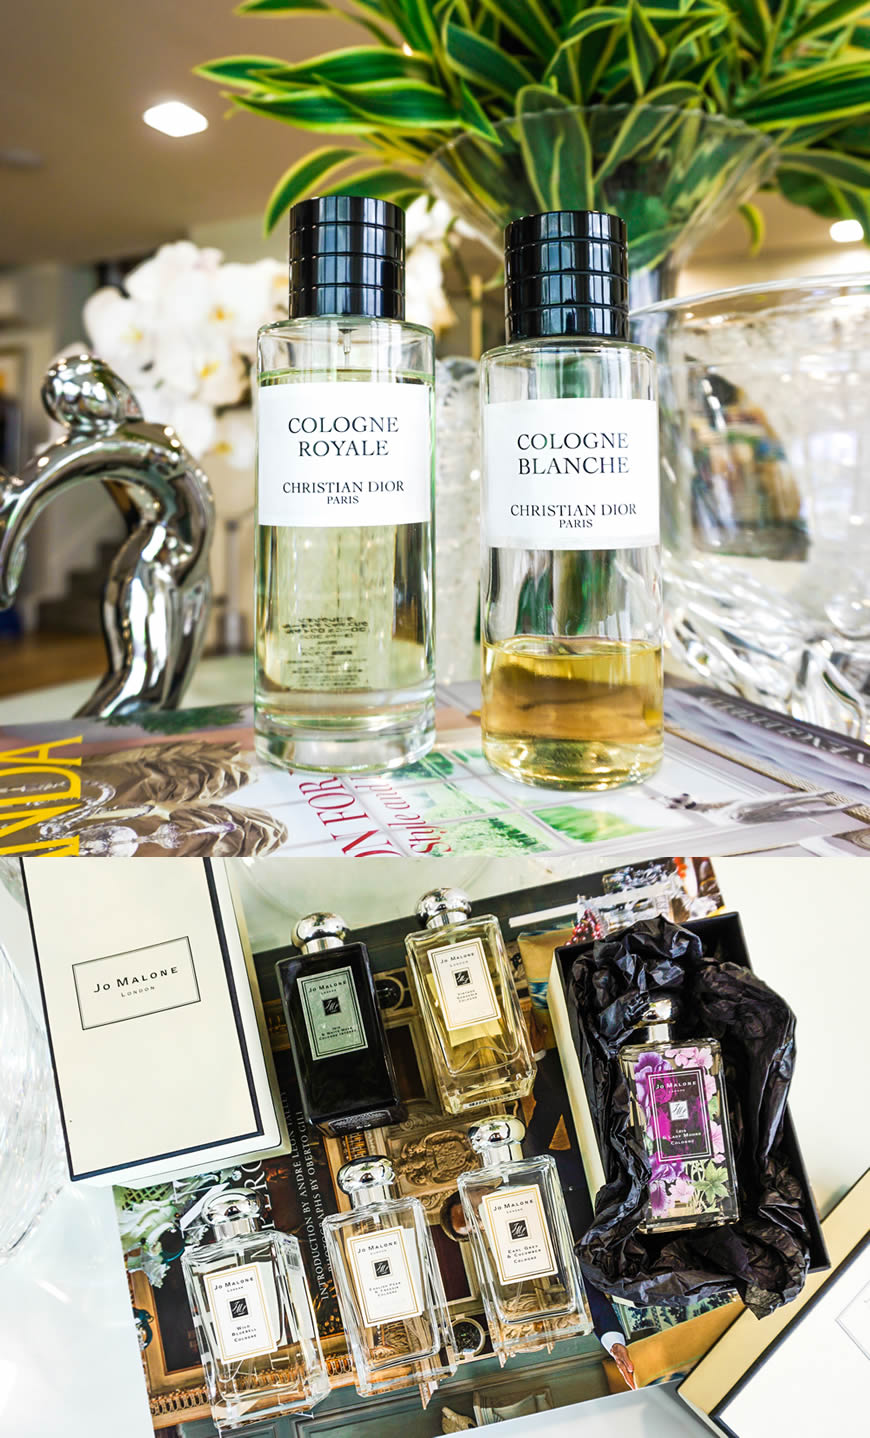 51bec56f9f43 The Cologne Royale and Cologne Blanche by Christian Dior has been Gretchen  Barretto's favorite ever-since. As far as I can remember, I read a certain  ...